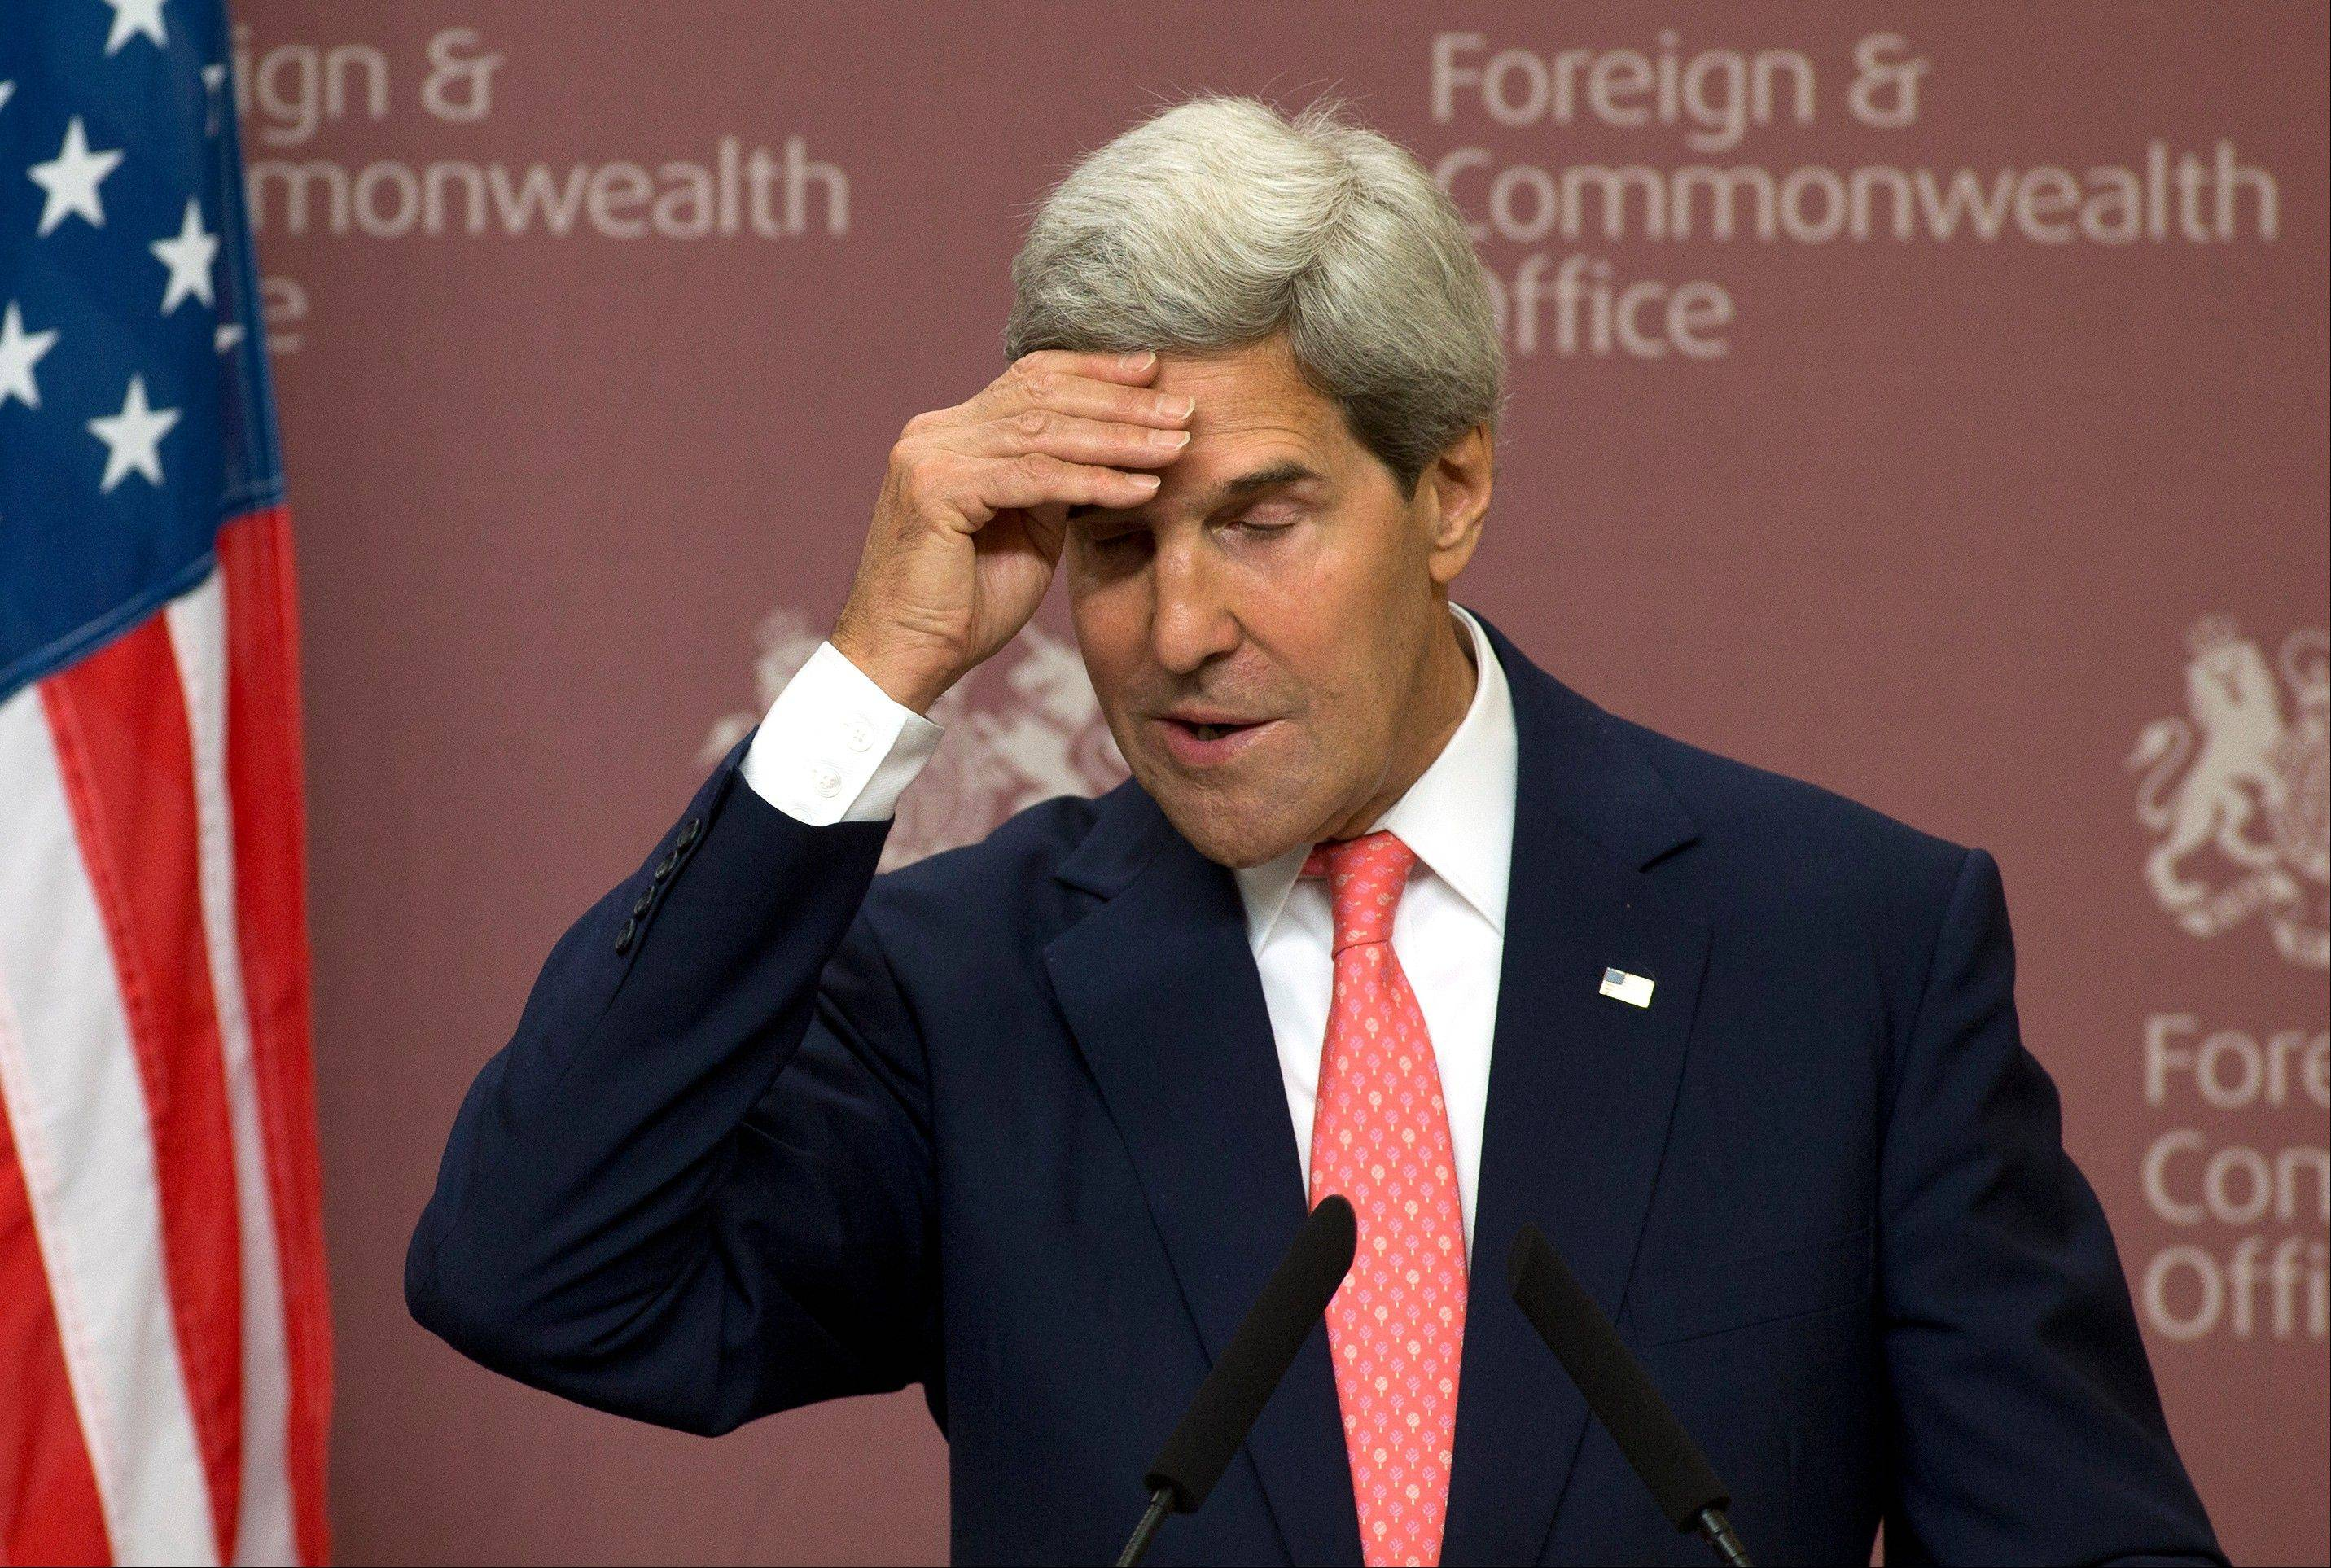 Kerry reasserts Syria charge despite Assad denial